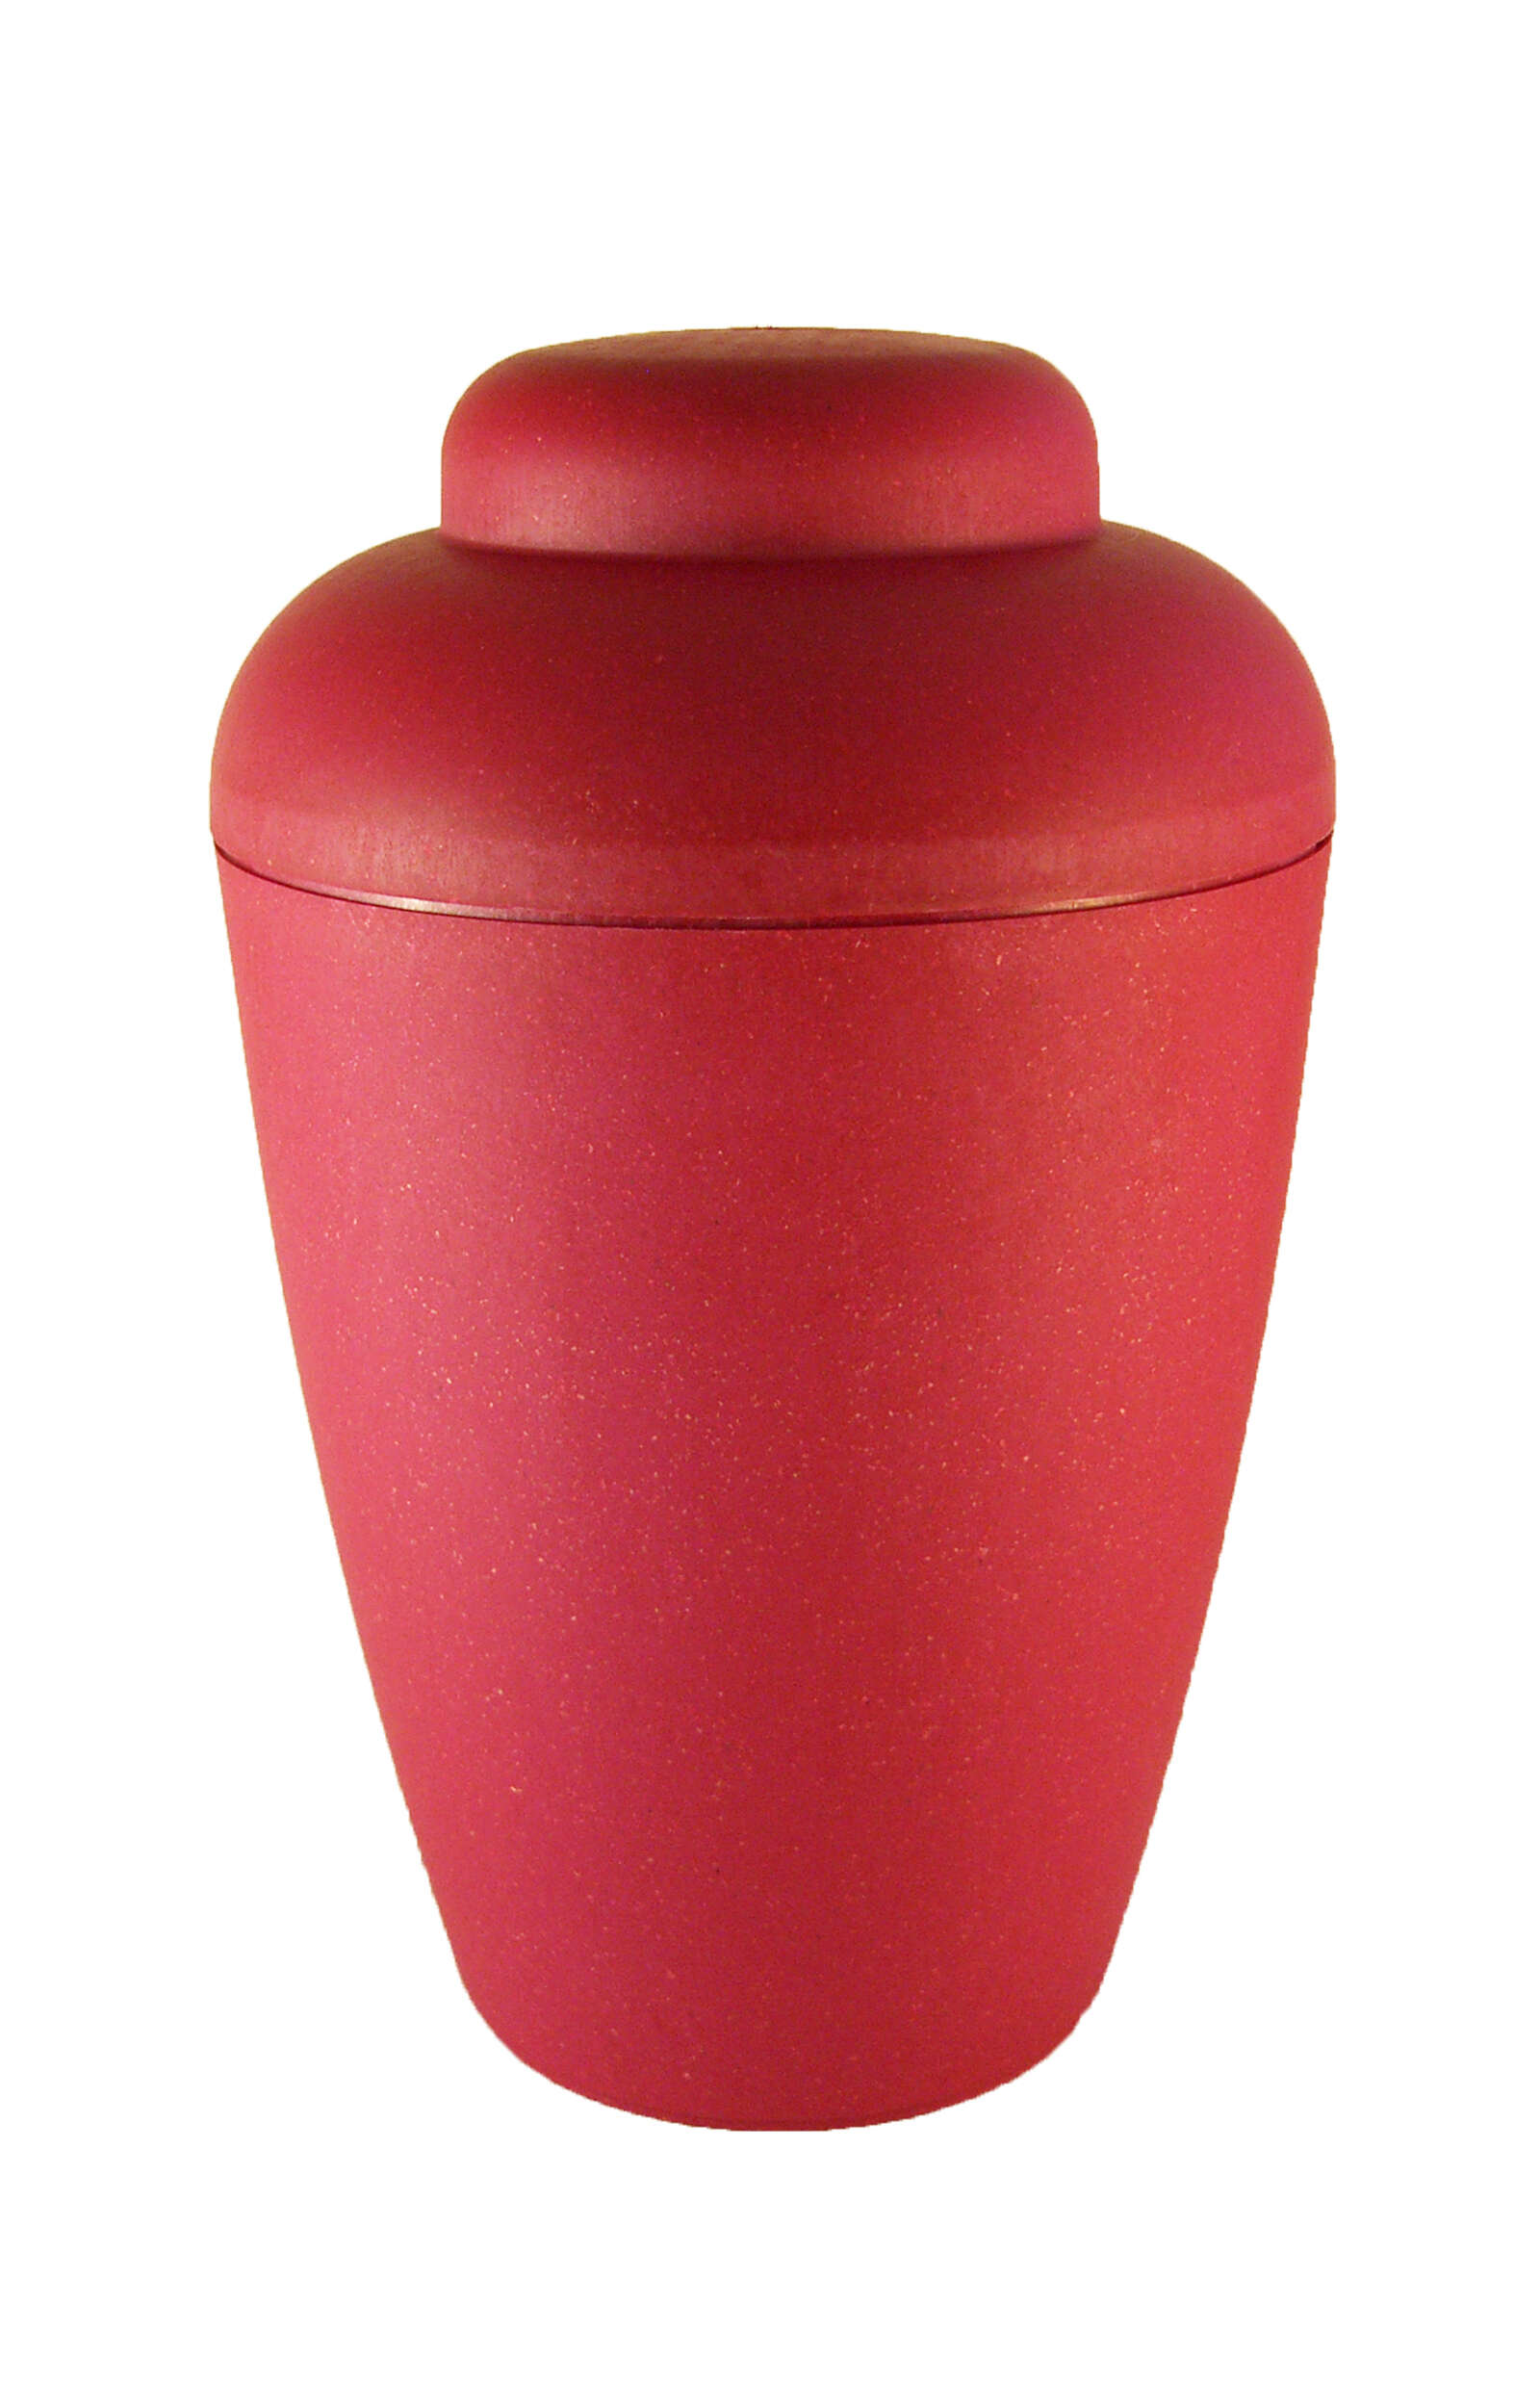 en BVR1404 biodigradable urn vale red funeral urns on sale elegant shape